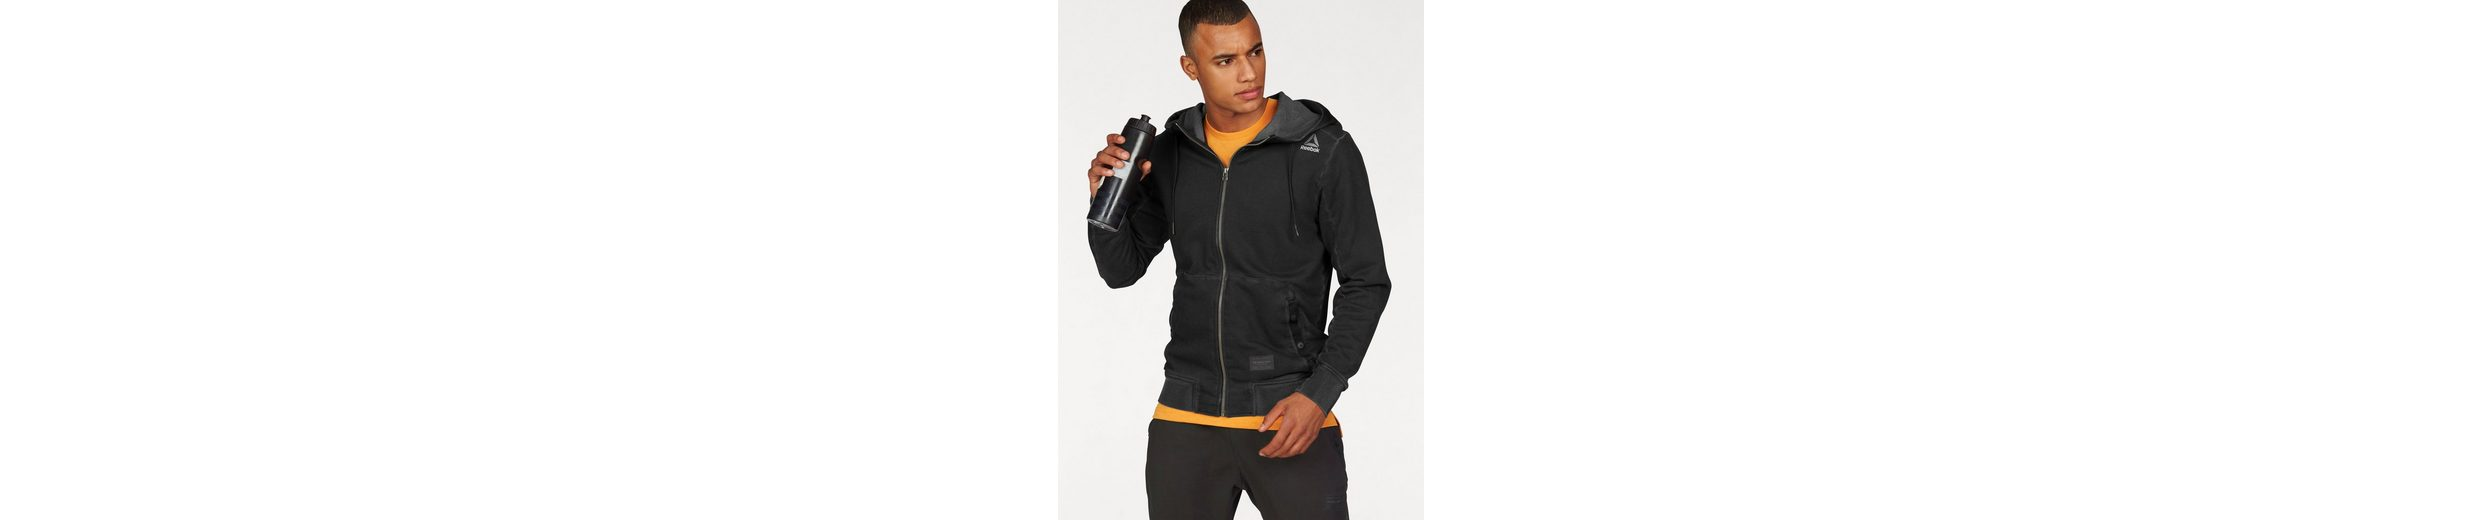 Reebok Kapuzensweatjacke NOBLE FIGHT FULL-ZIP HOOD